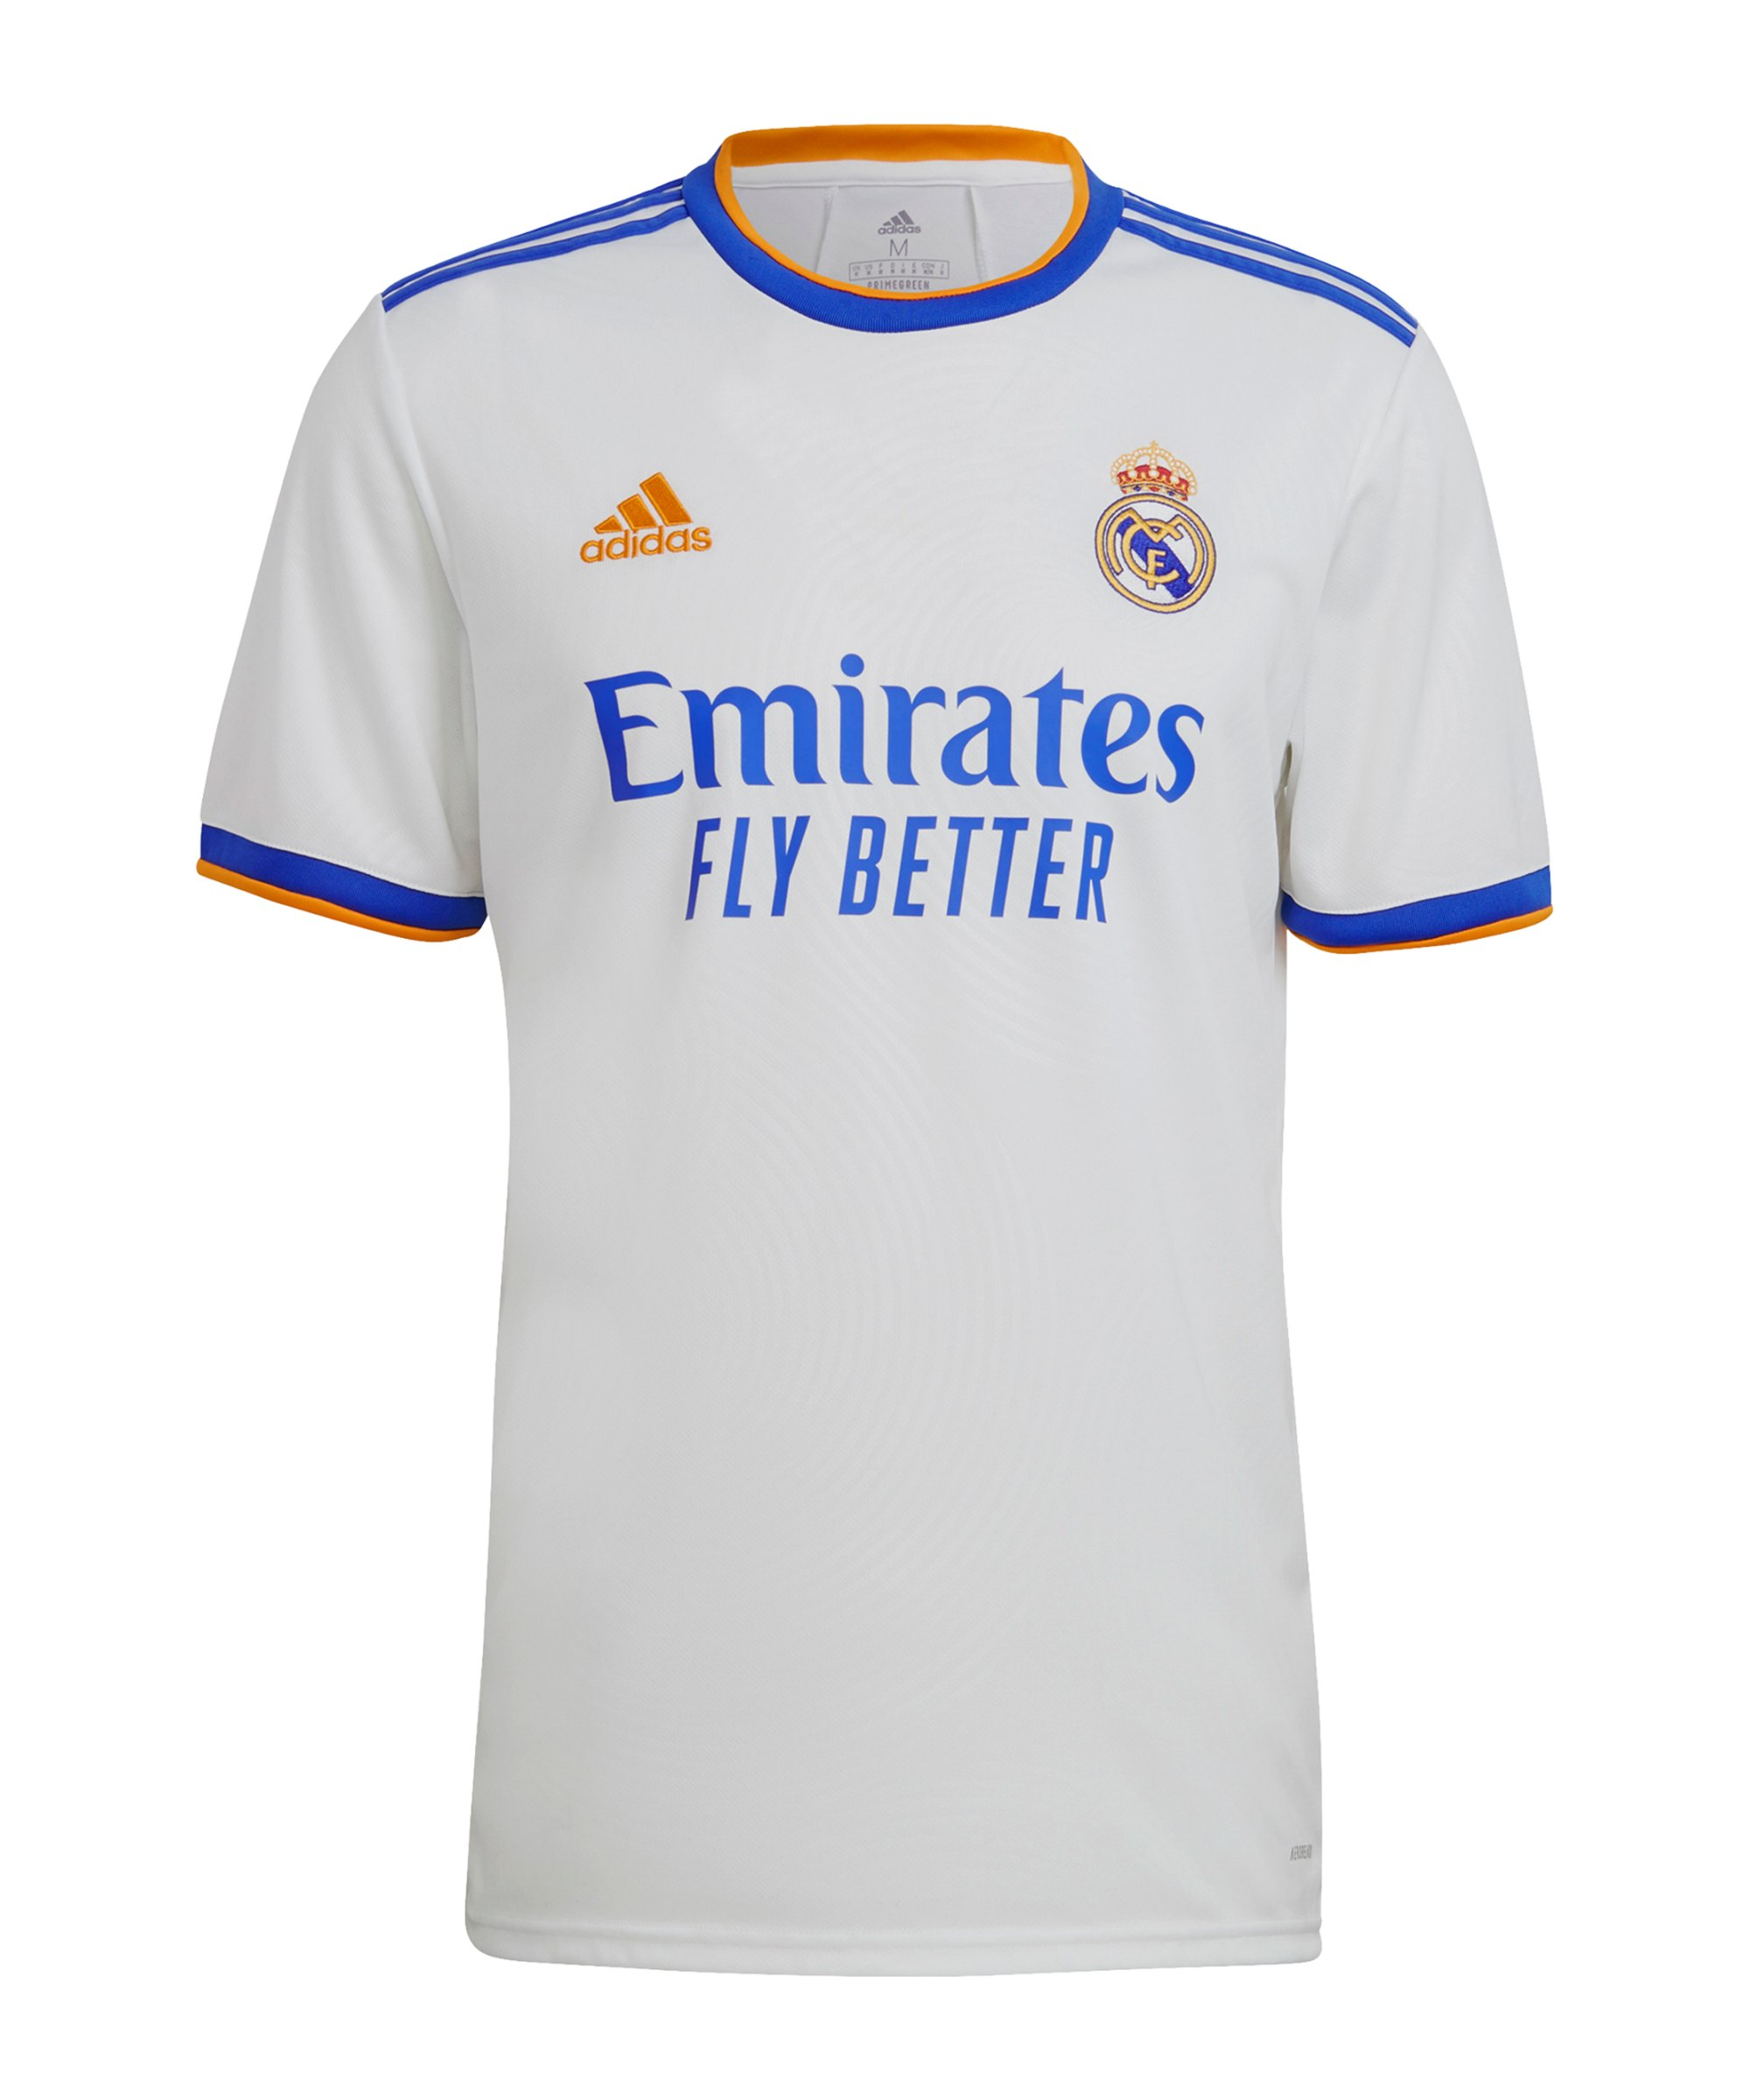 adidas Real Madrid Trikot Home 2021/2022 Weiss - weiss